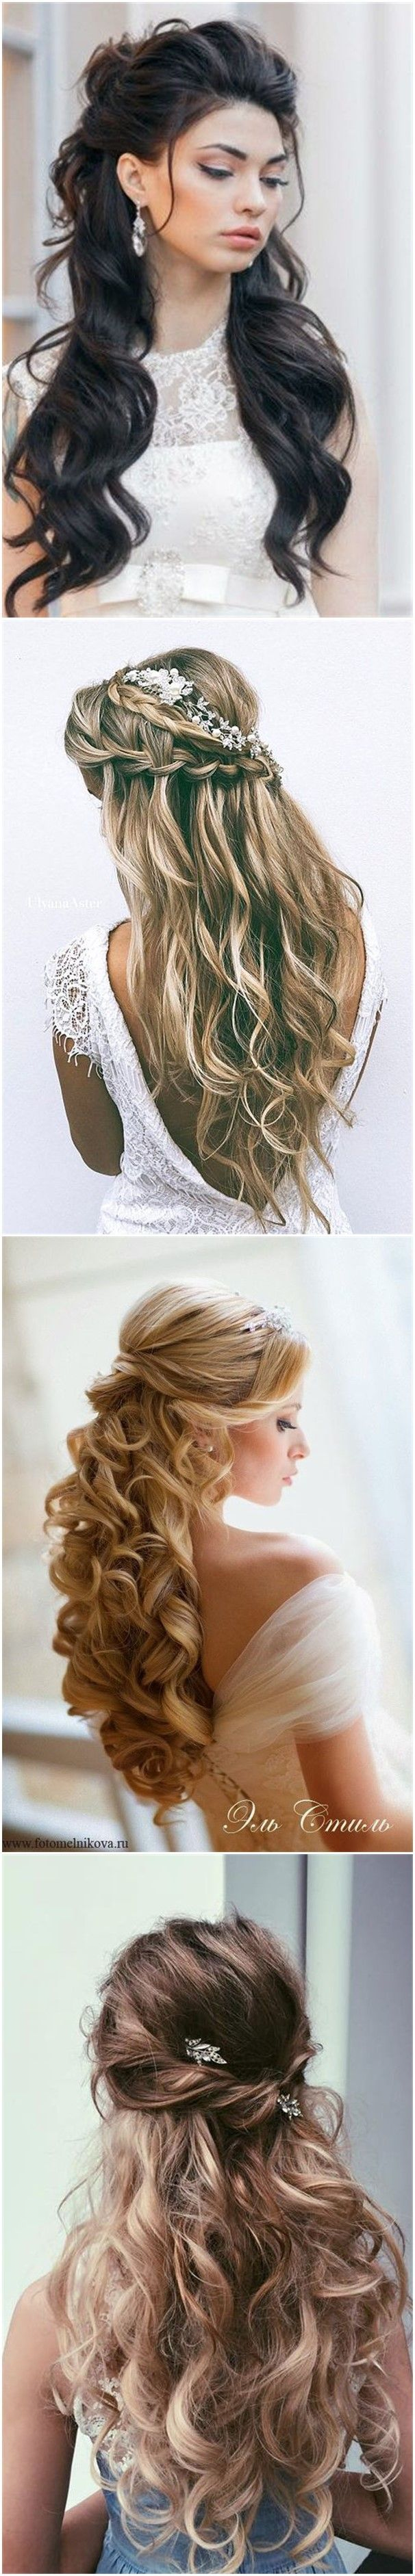 18 Creative And Unique Wedding Hairstyles For Long Hair: Best 25+ Elegant Wedding Hairstyles Ideas On Pinterest